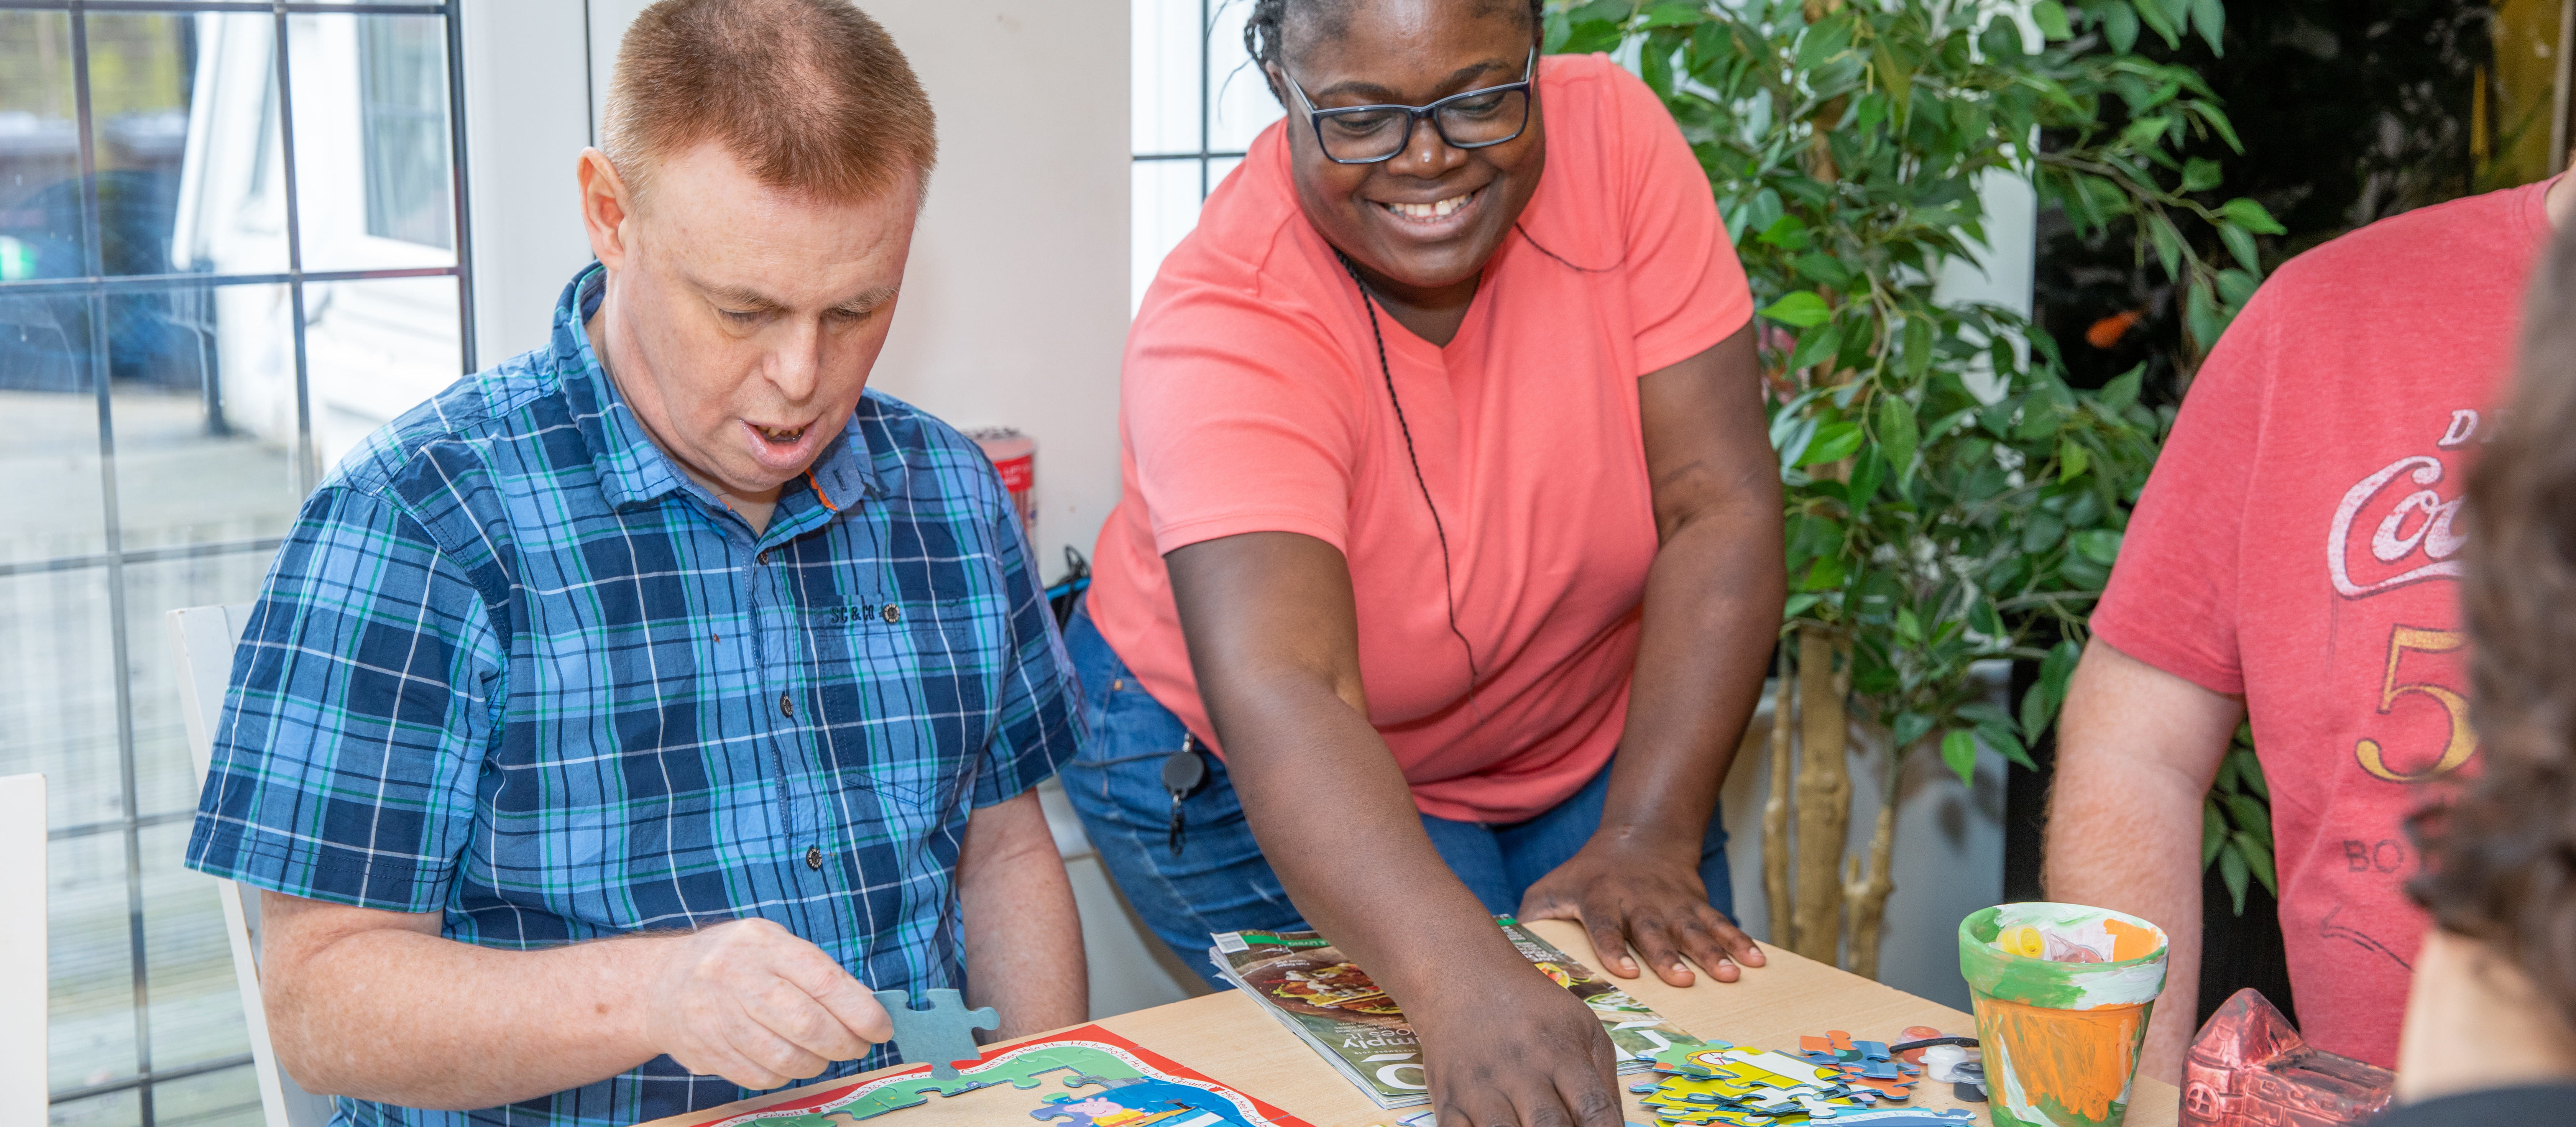 Carer and client completing puzzle together